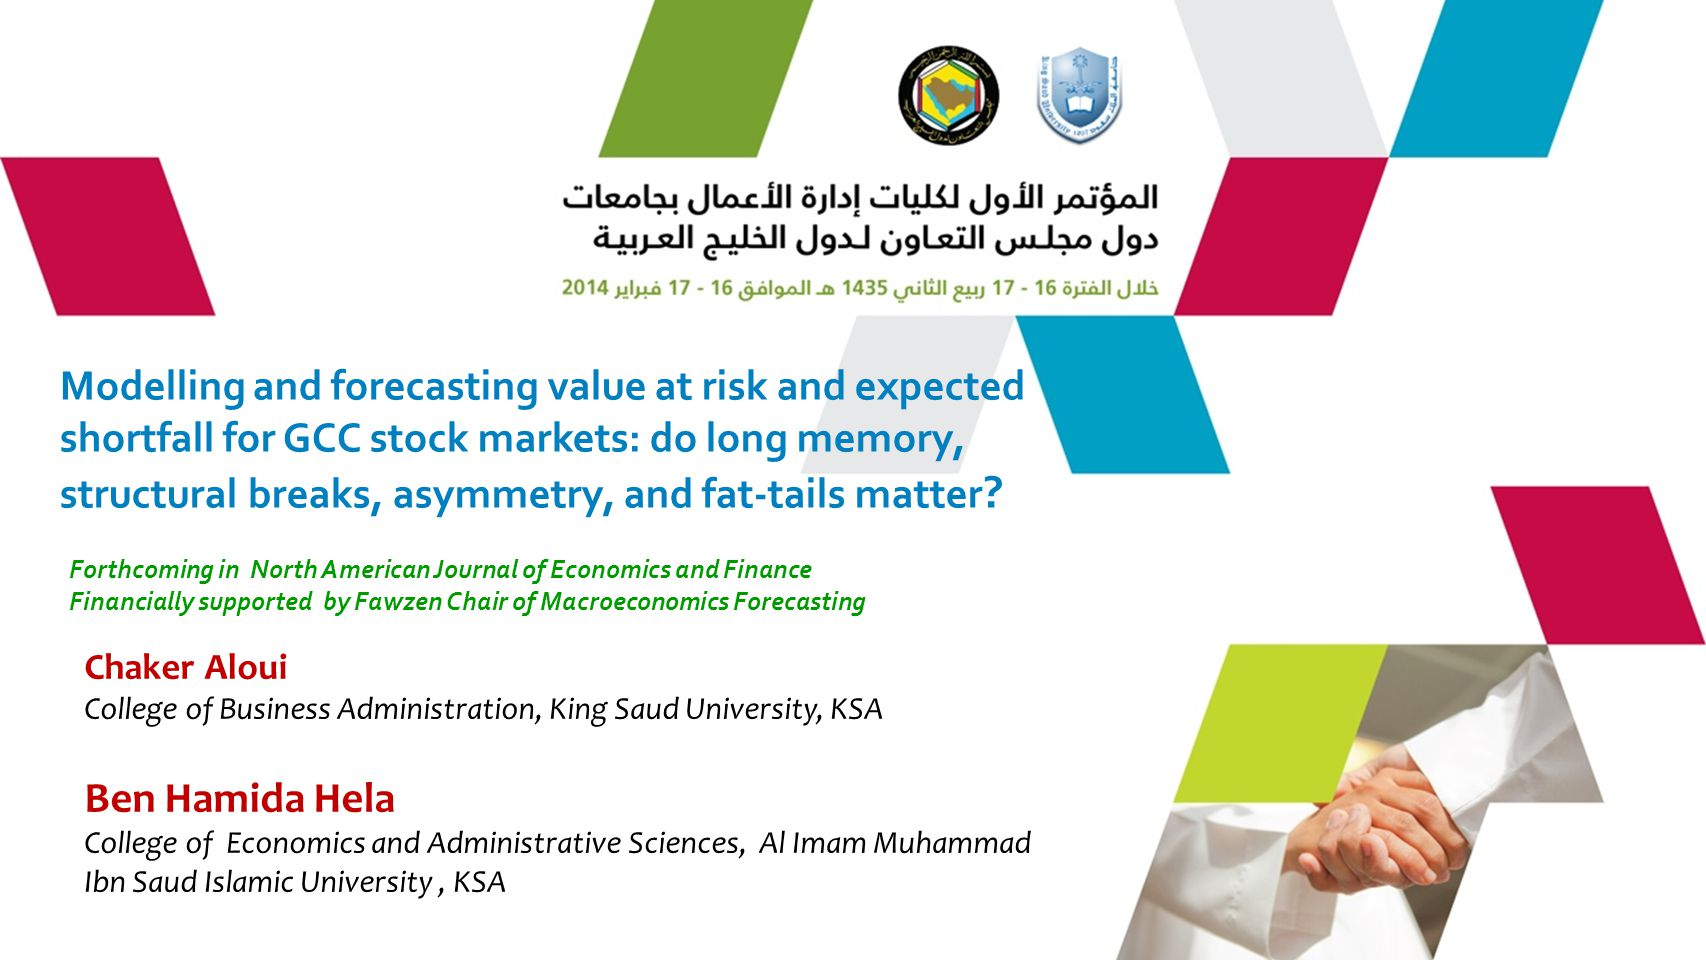 Modelling and forecasting value at risk and expected shortfall for GCC stock markets: do long memory, structural breaks, asymmetry, and fat-tails matter.